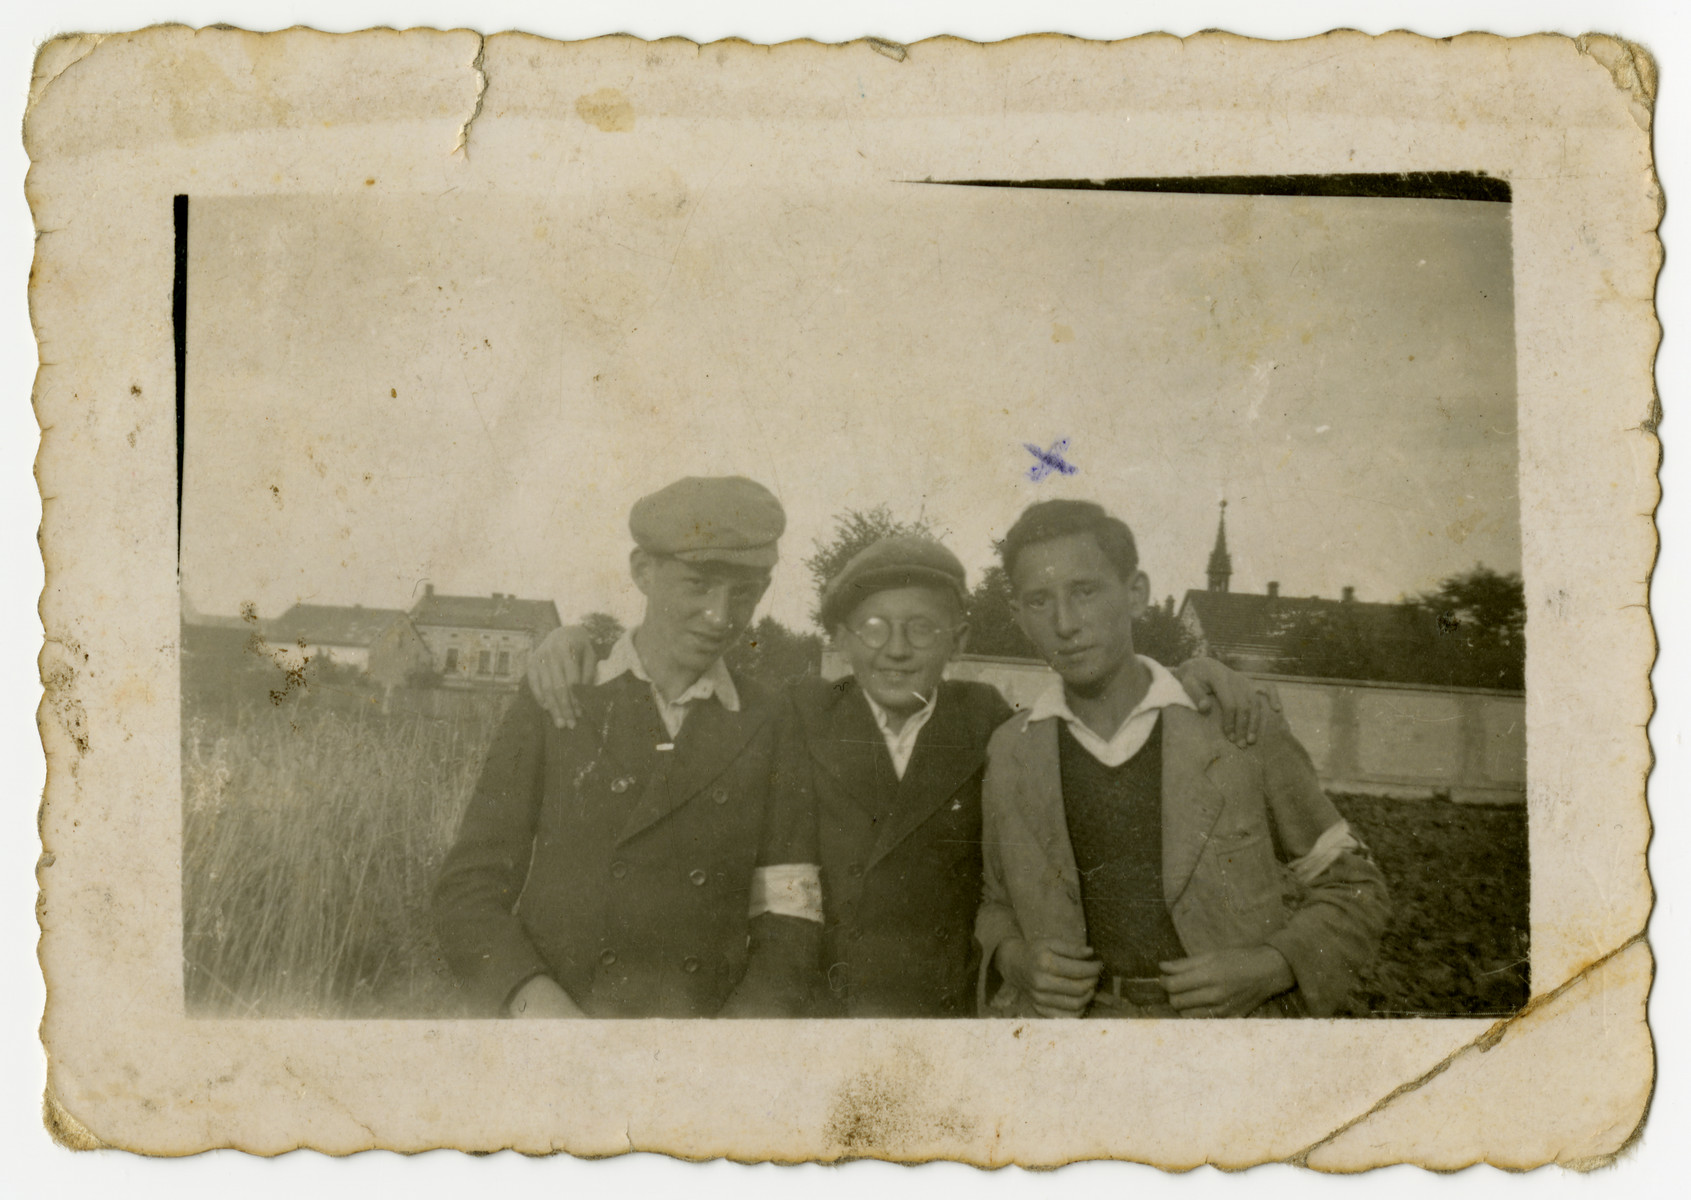 Portrait of three Jewish youth in the Sosnowiec ghetto.